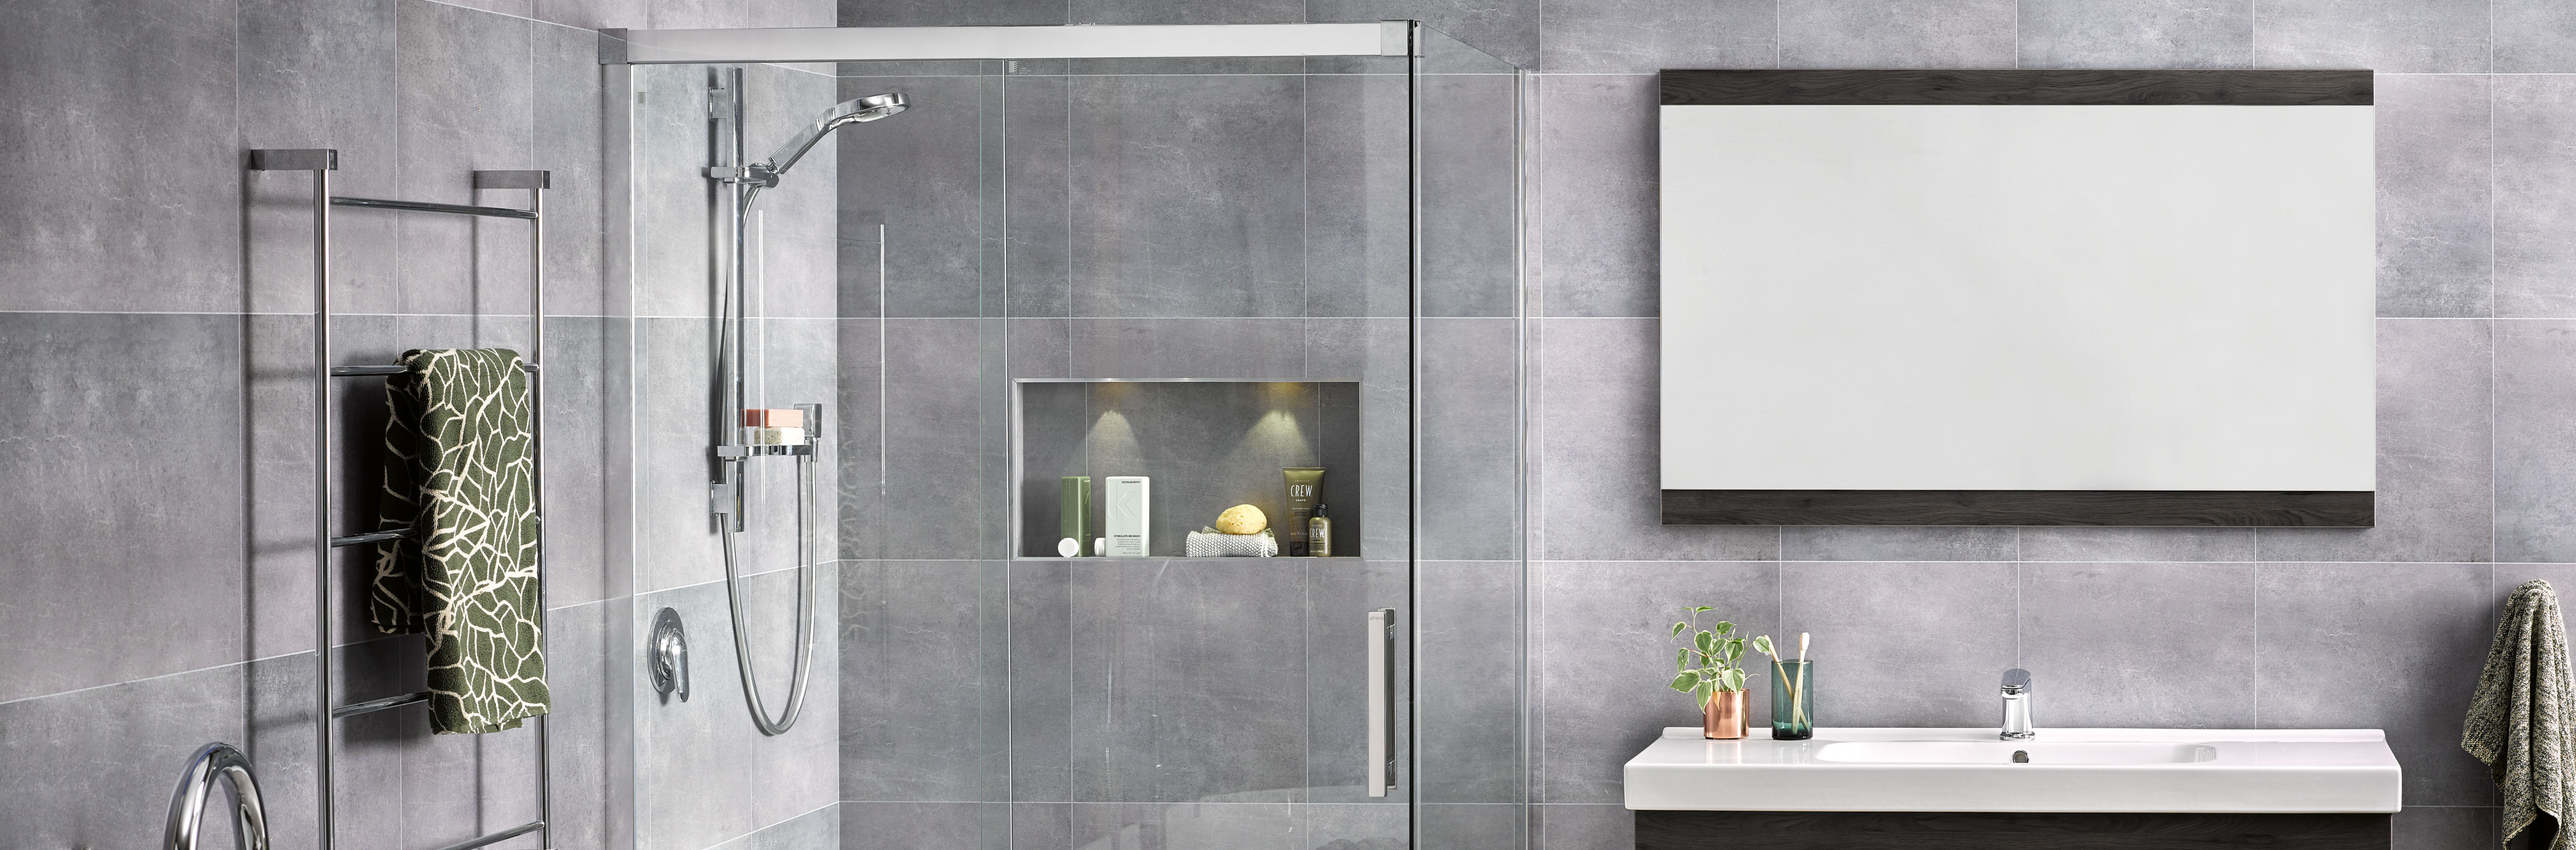 Athena Bathrooms Bathroomware Designed For New Zealand Homes: bathroom tiles ideas nz